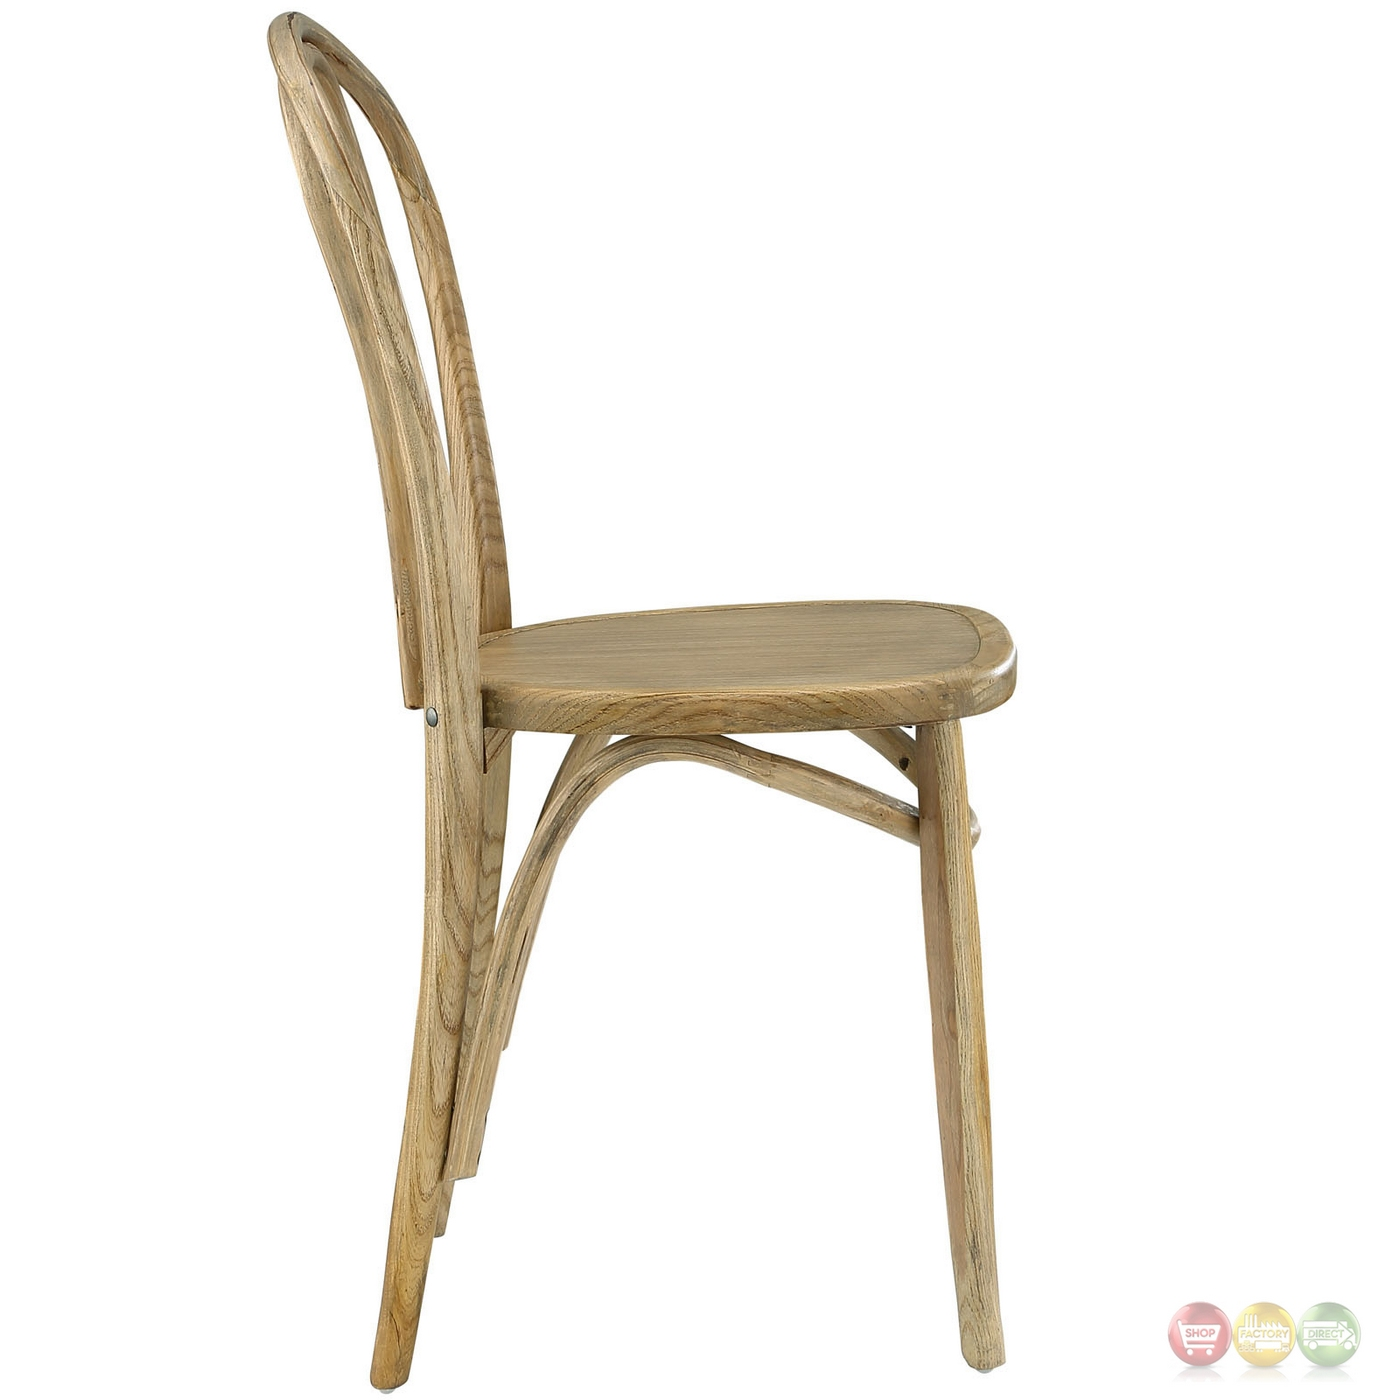 Eon contemporary natural solid wood dining side chair natural - Natural wood dining chairs ...